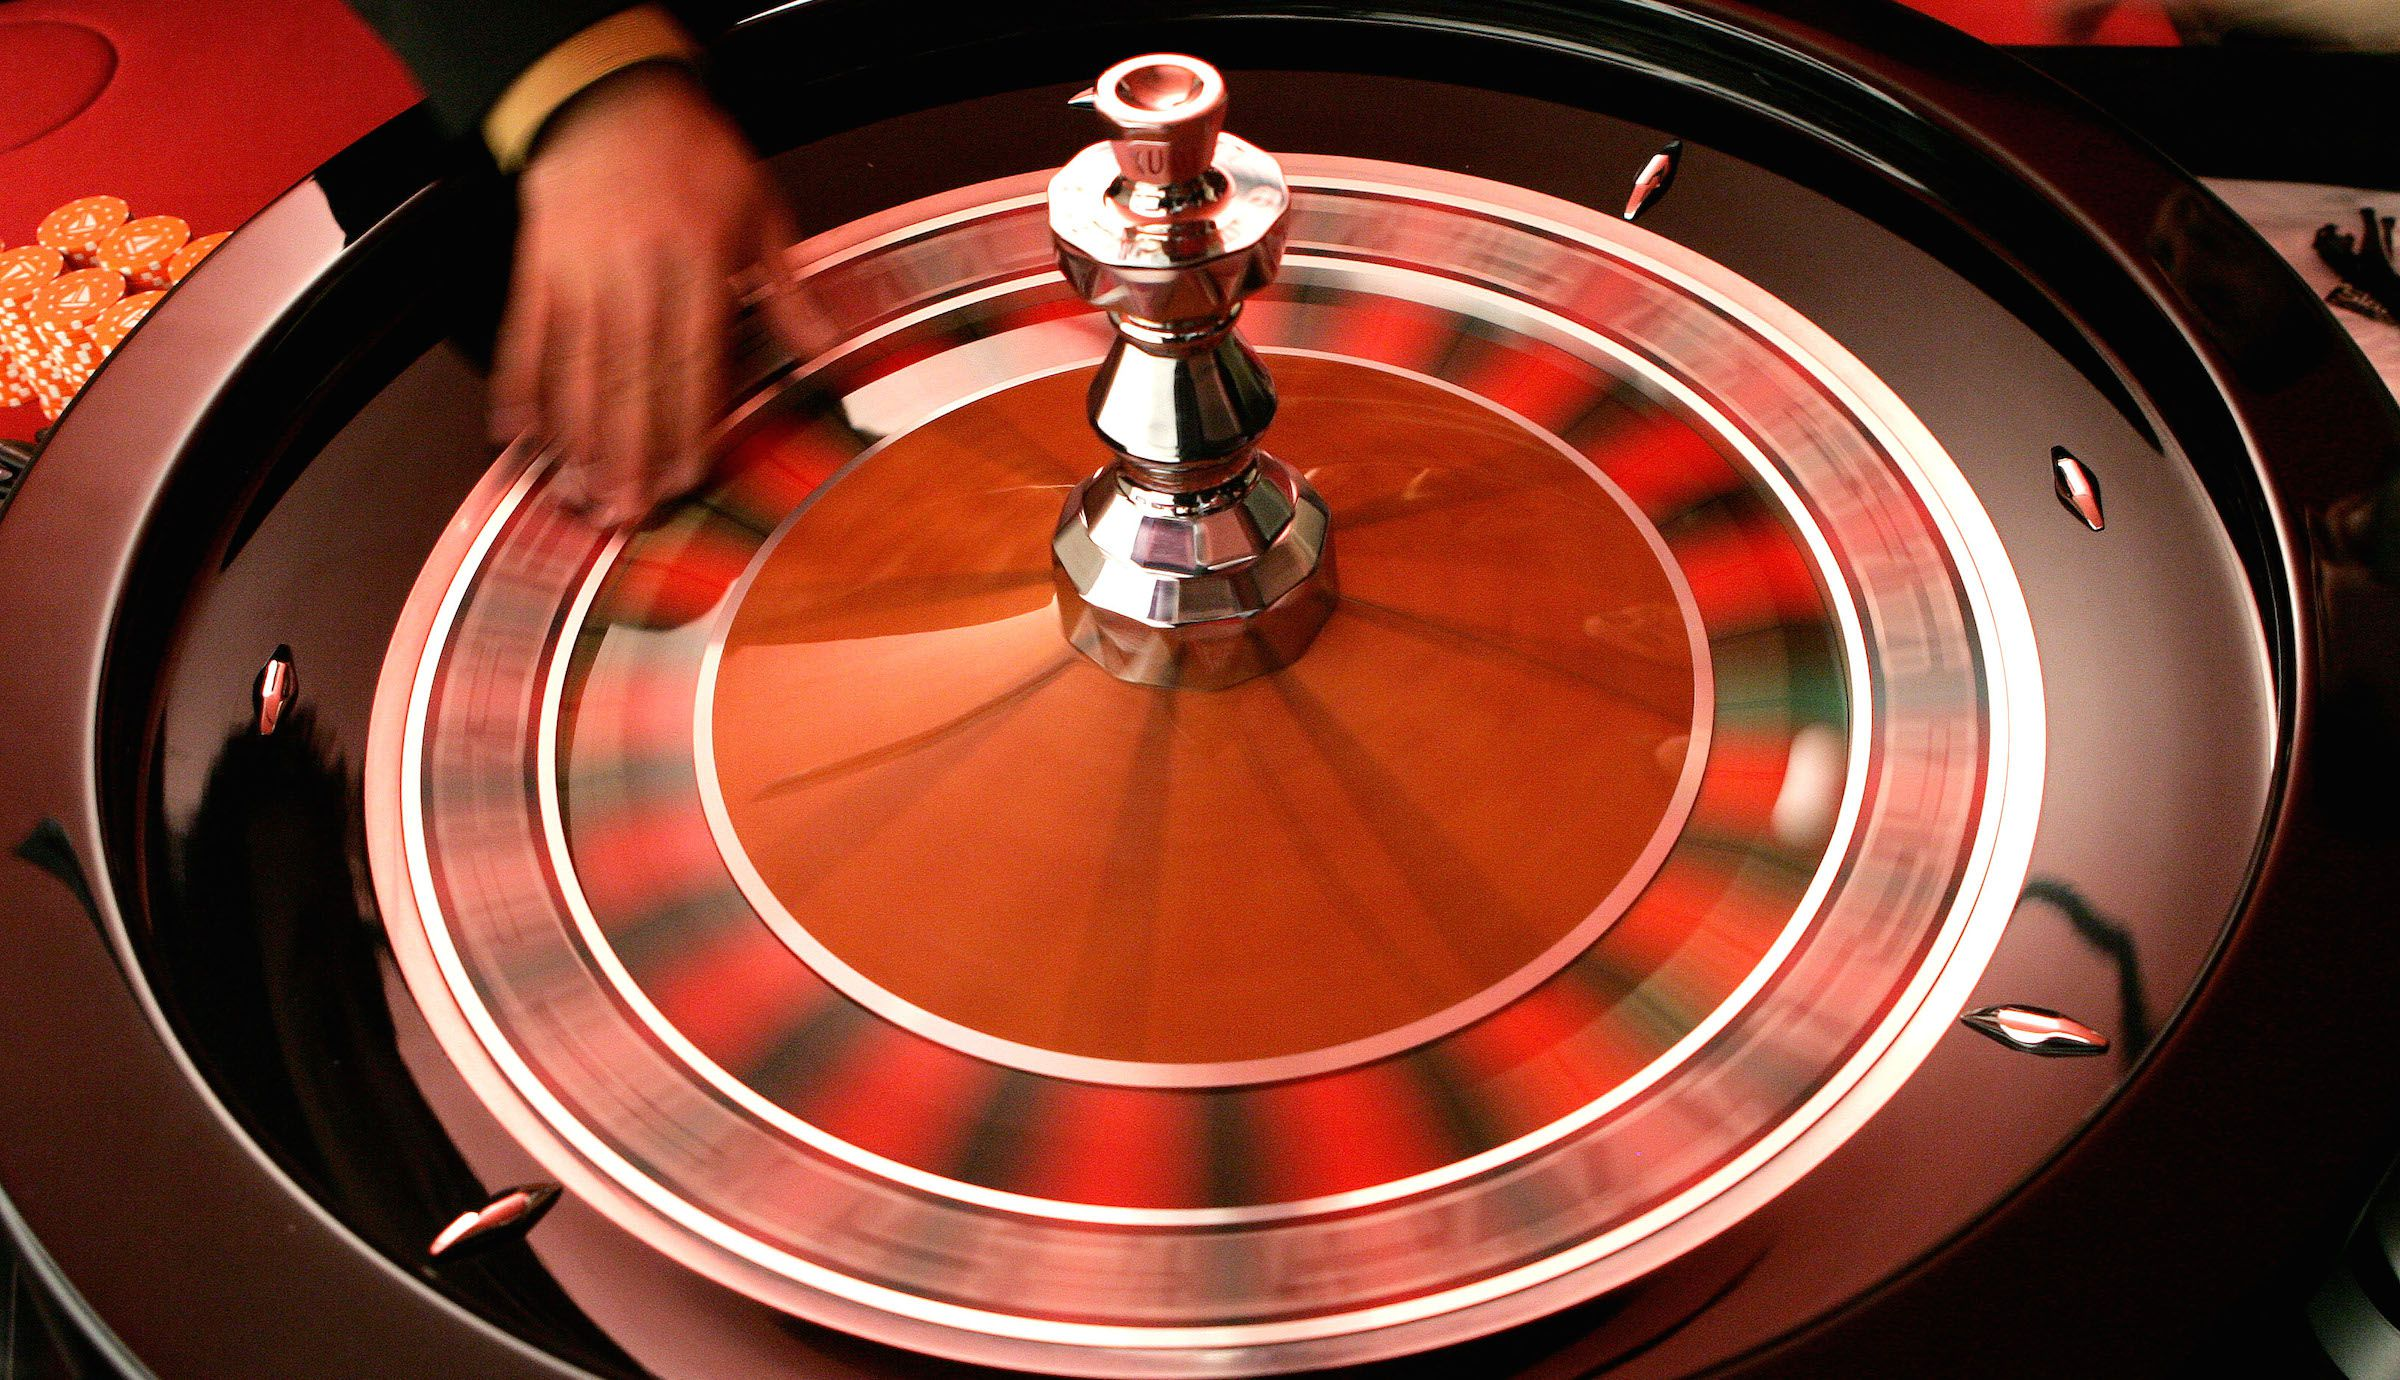 A croupier turns the roulette at the Brussels Casino owned by the Casinos Austria International November 25, 2005. The casino is the first to be built in Brussels. It has an area of 6200 square metres and offers 13 gaming tables, 201 slot machines, and will open on January 19, 2006. REUTERS/Francois Lenoir - RTR1BMXC